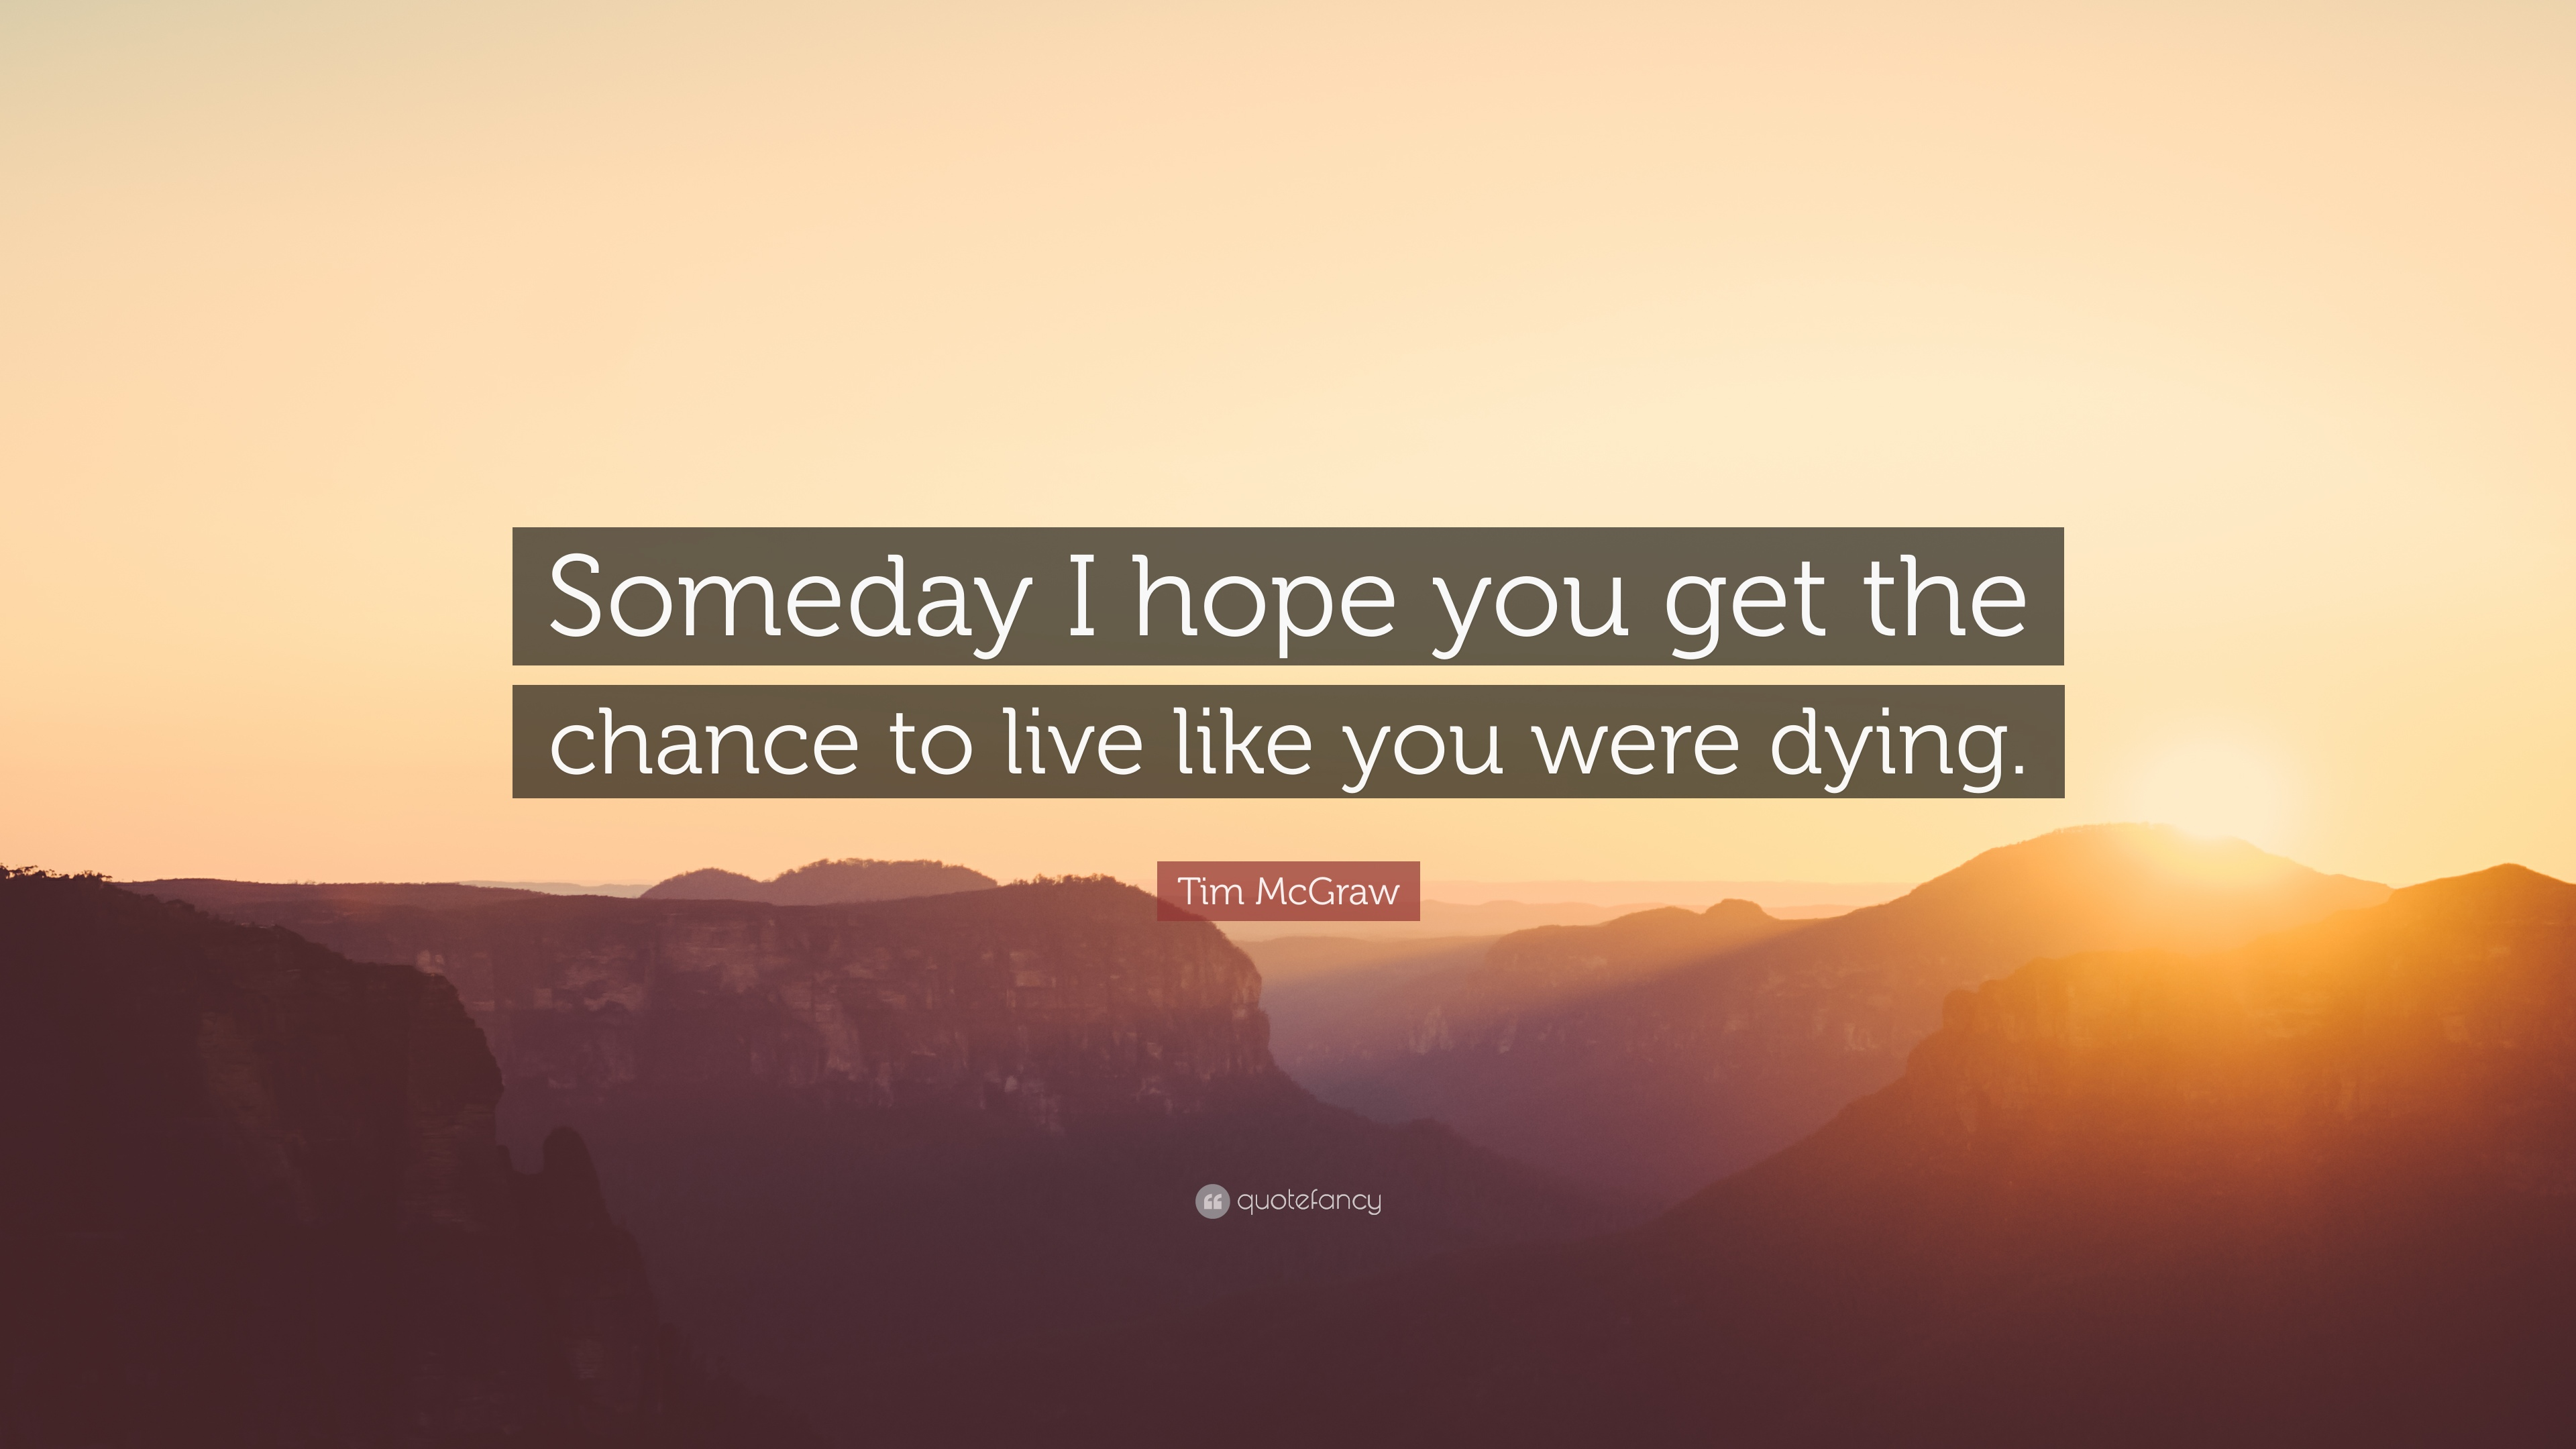 Tim Mcgraw Quote Someday I Hope You Get The Chance To Live Like